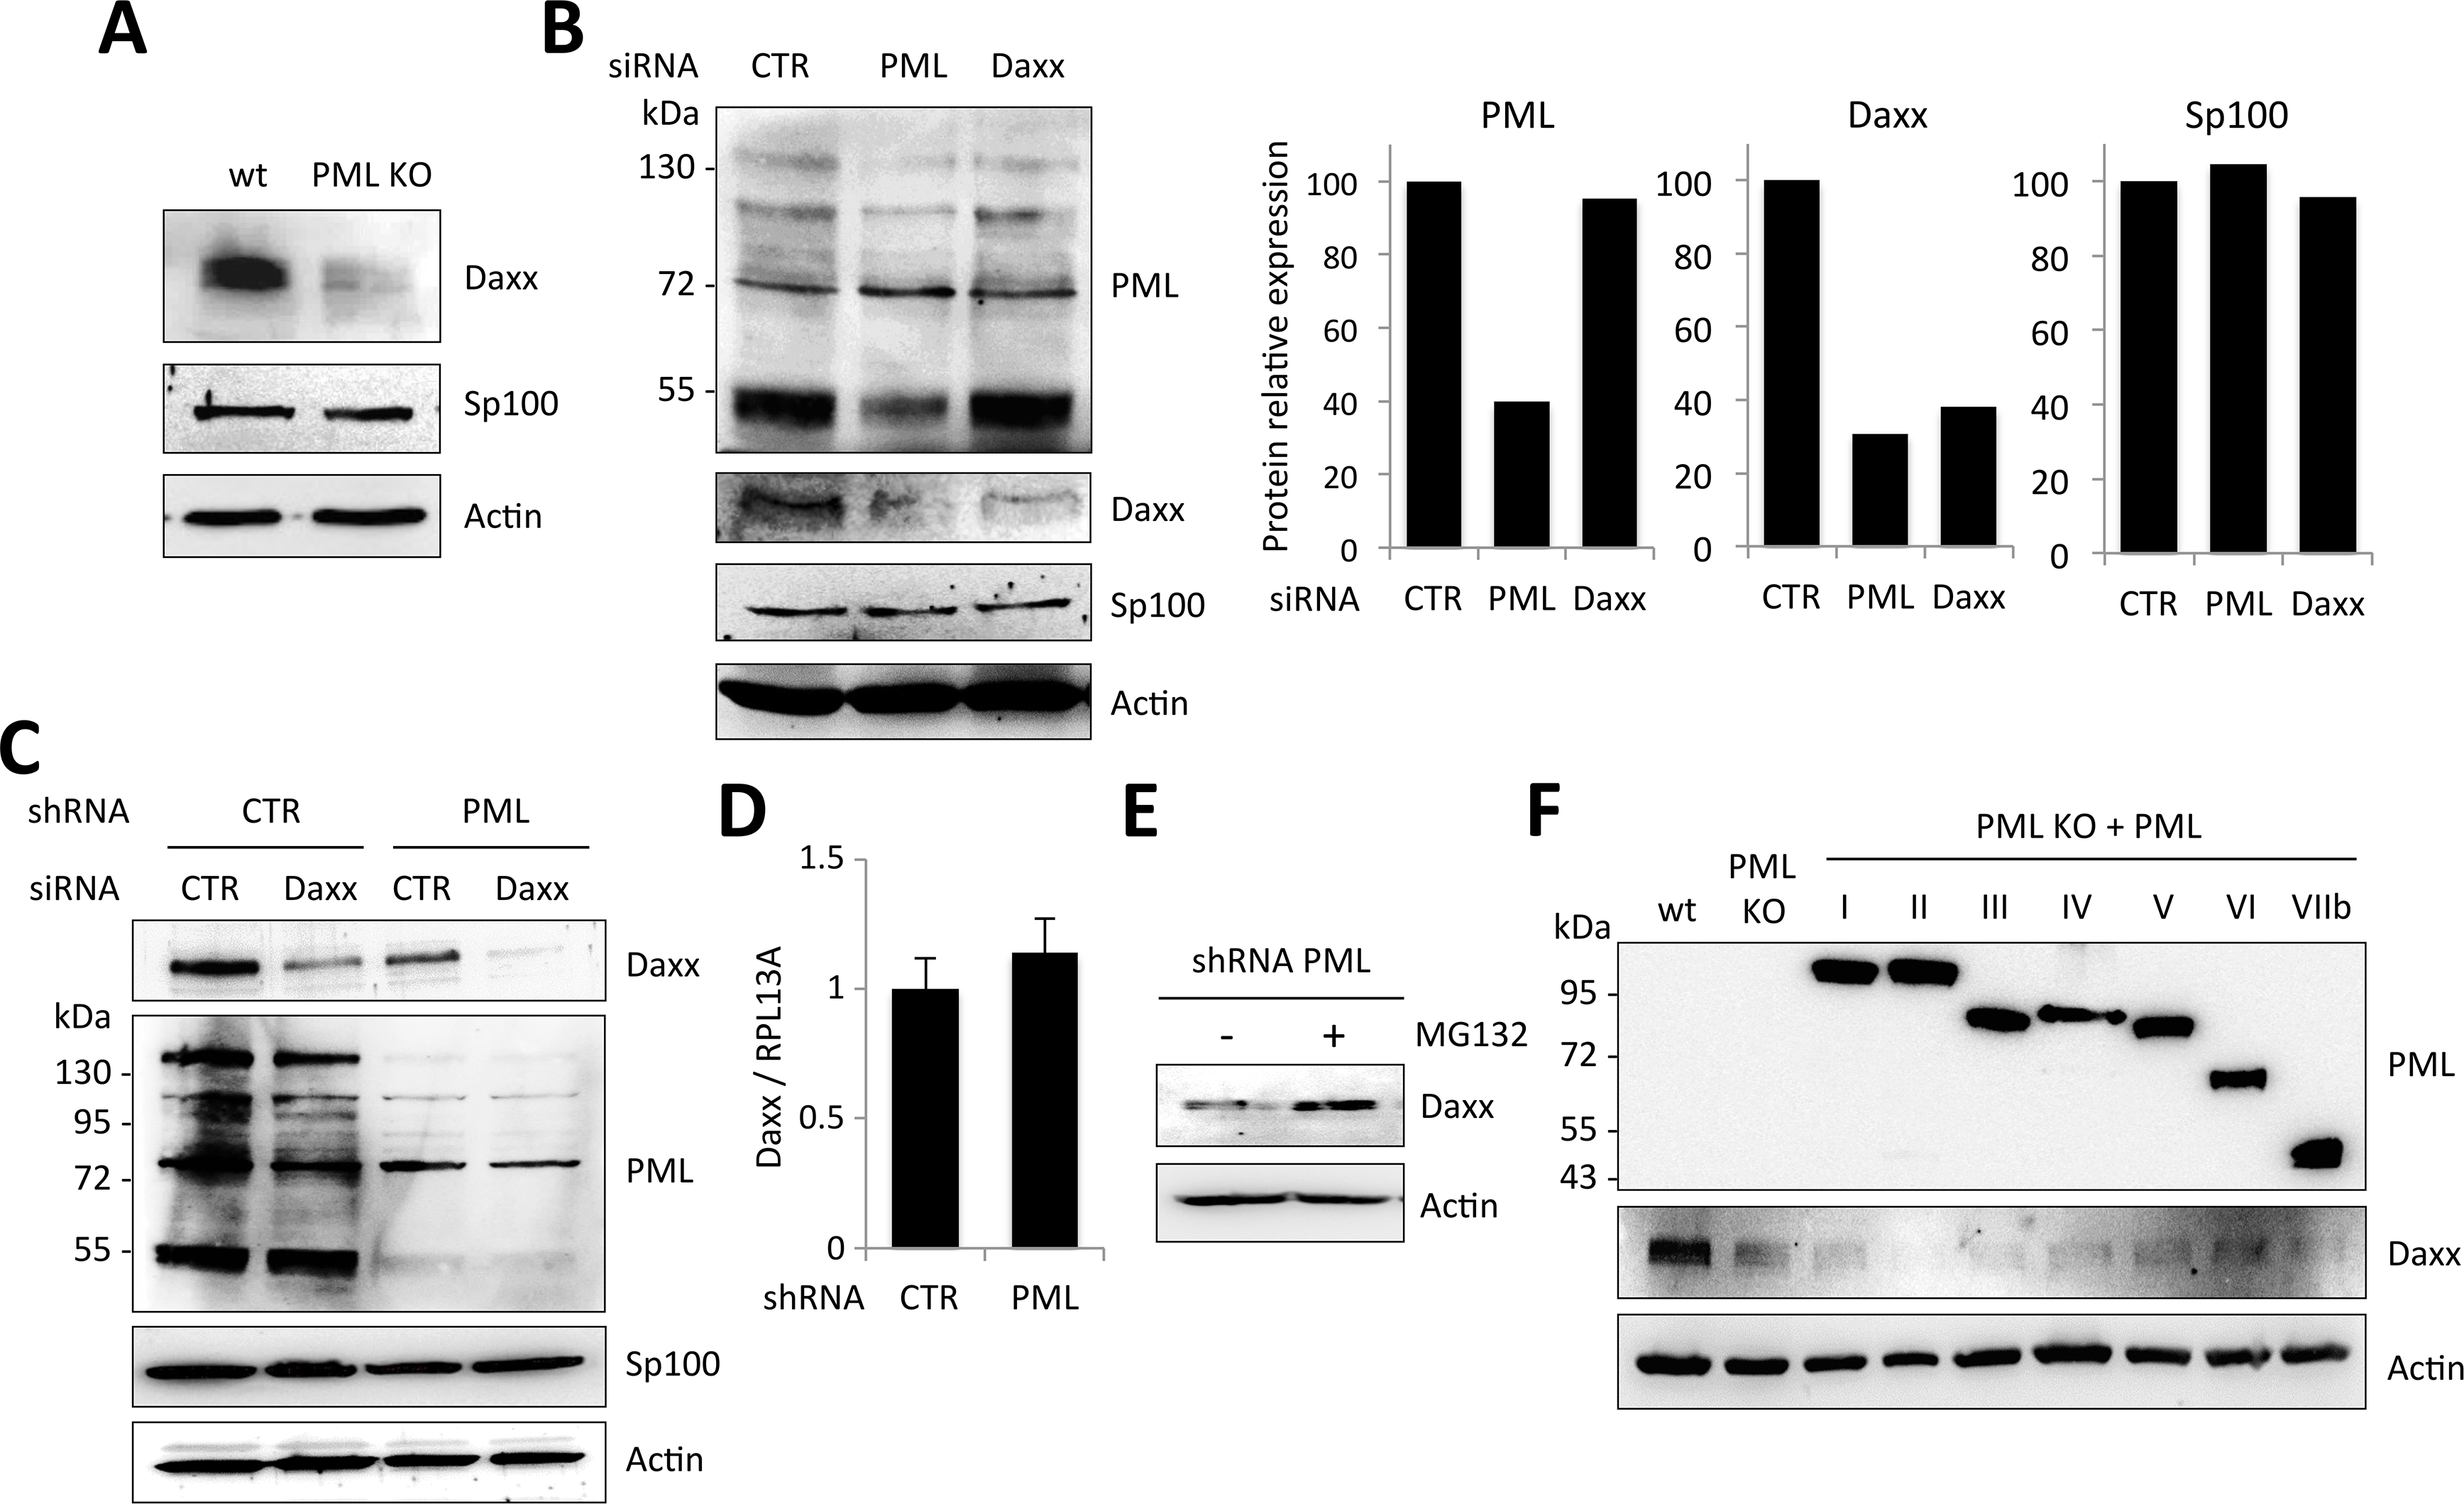 PML expression is required for Daxx stability.